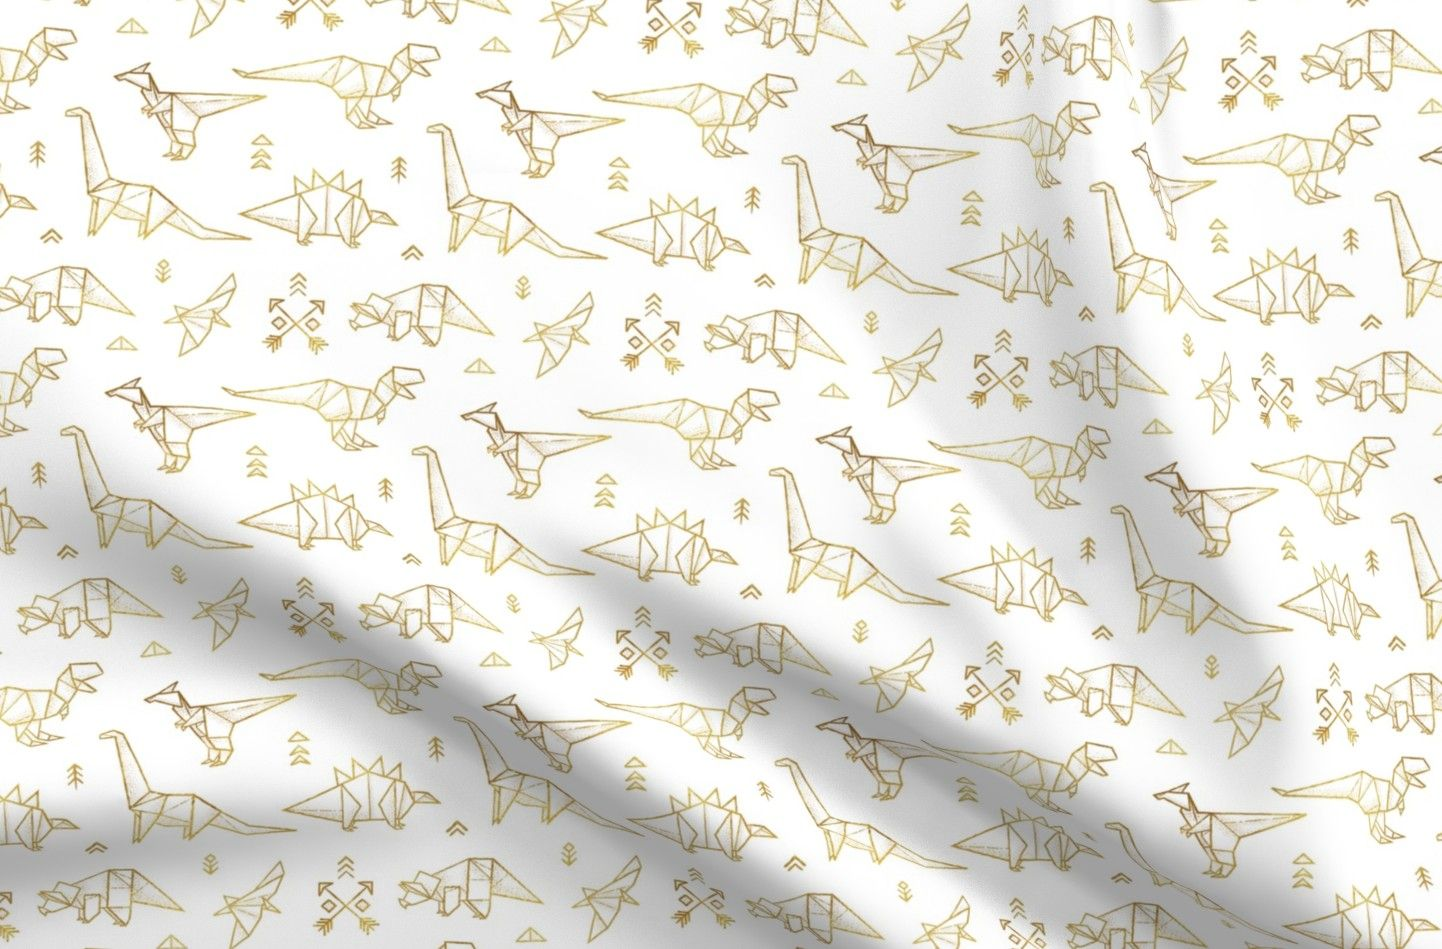 Photo of Dinosaurs Organic Cotton Knit Fabric By the Yard Gold Origami Dinos Arrows Tribal Decor Silhouette Geometric Triangles Children Golden  By Spoonflower